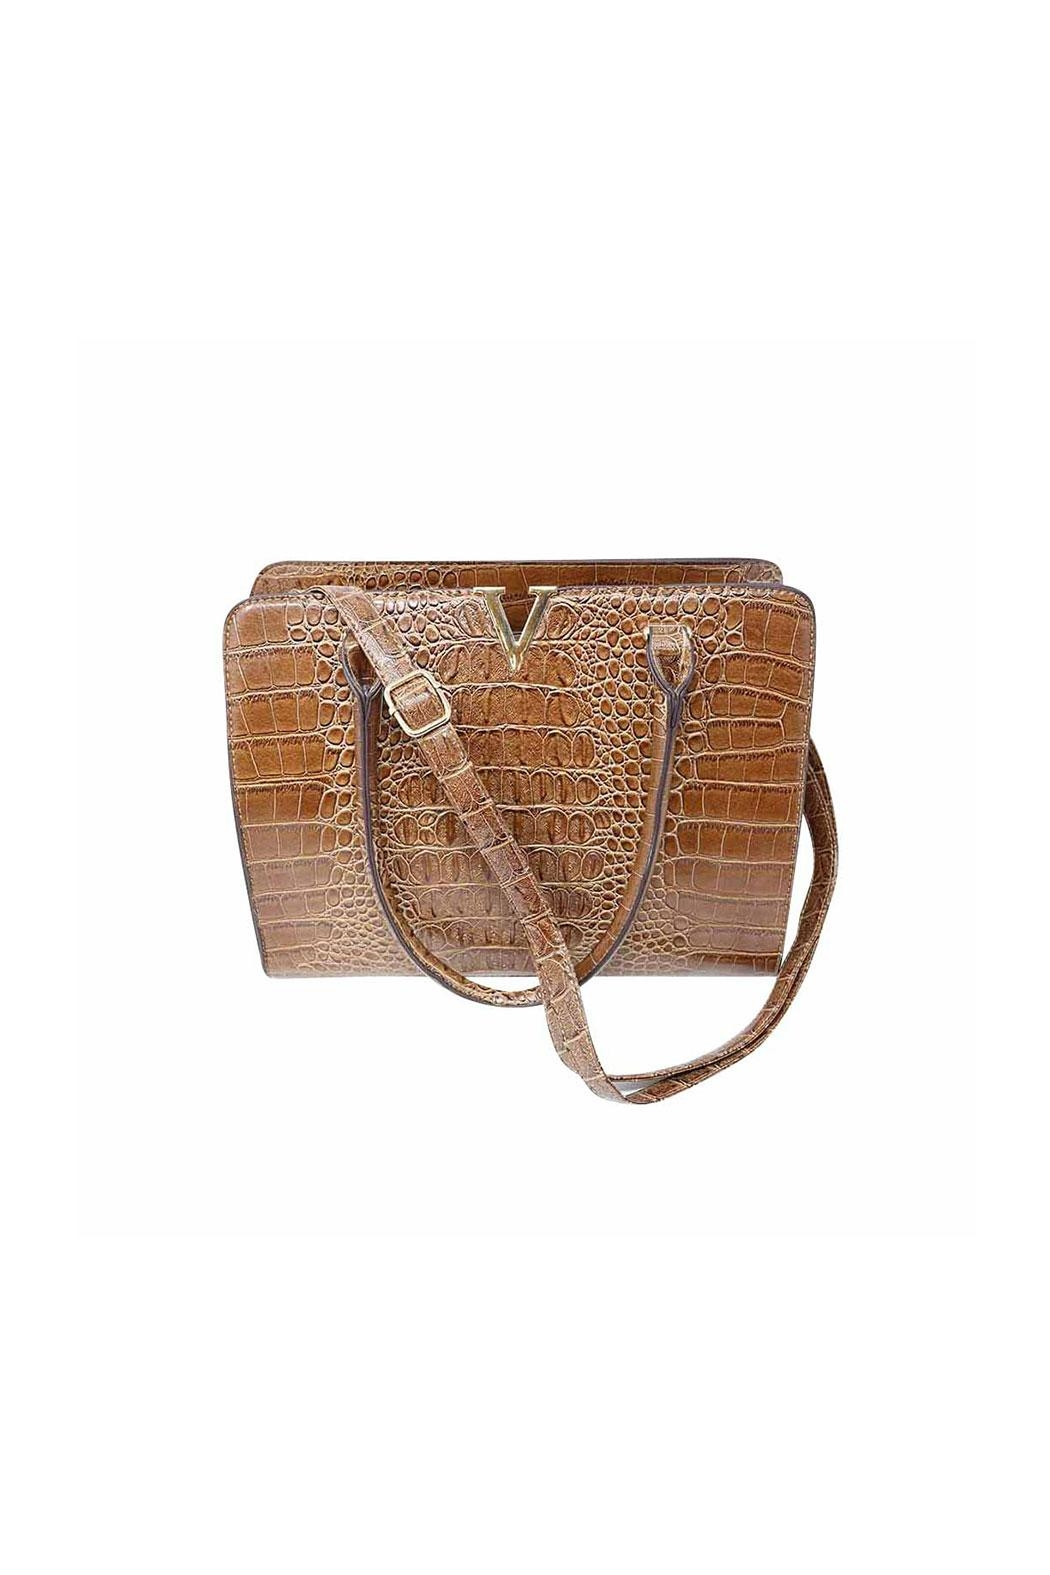 Nadya's Closet Croc Accent Bag - Main Image